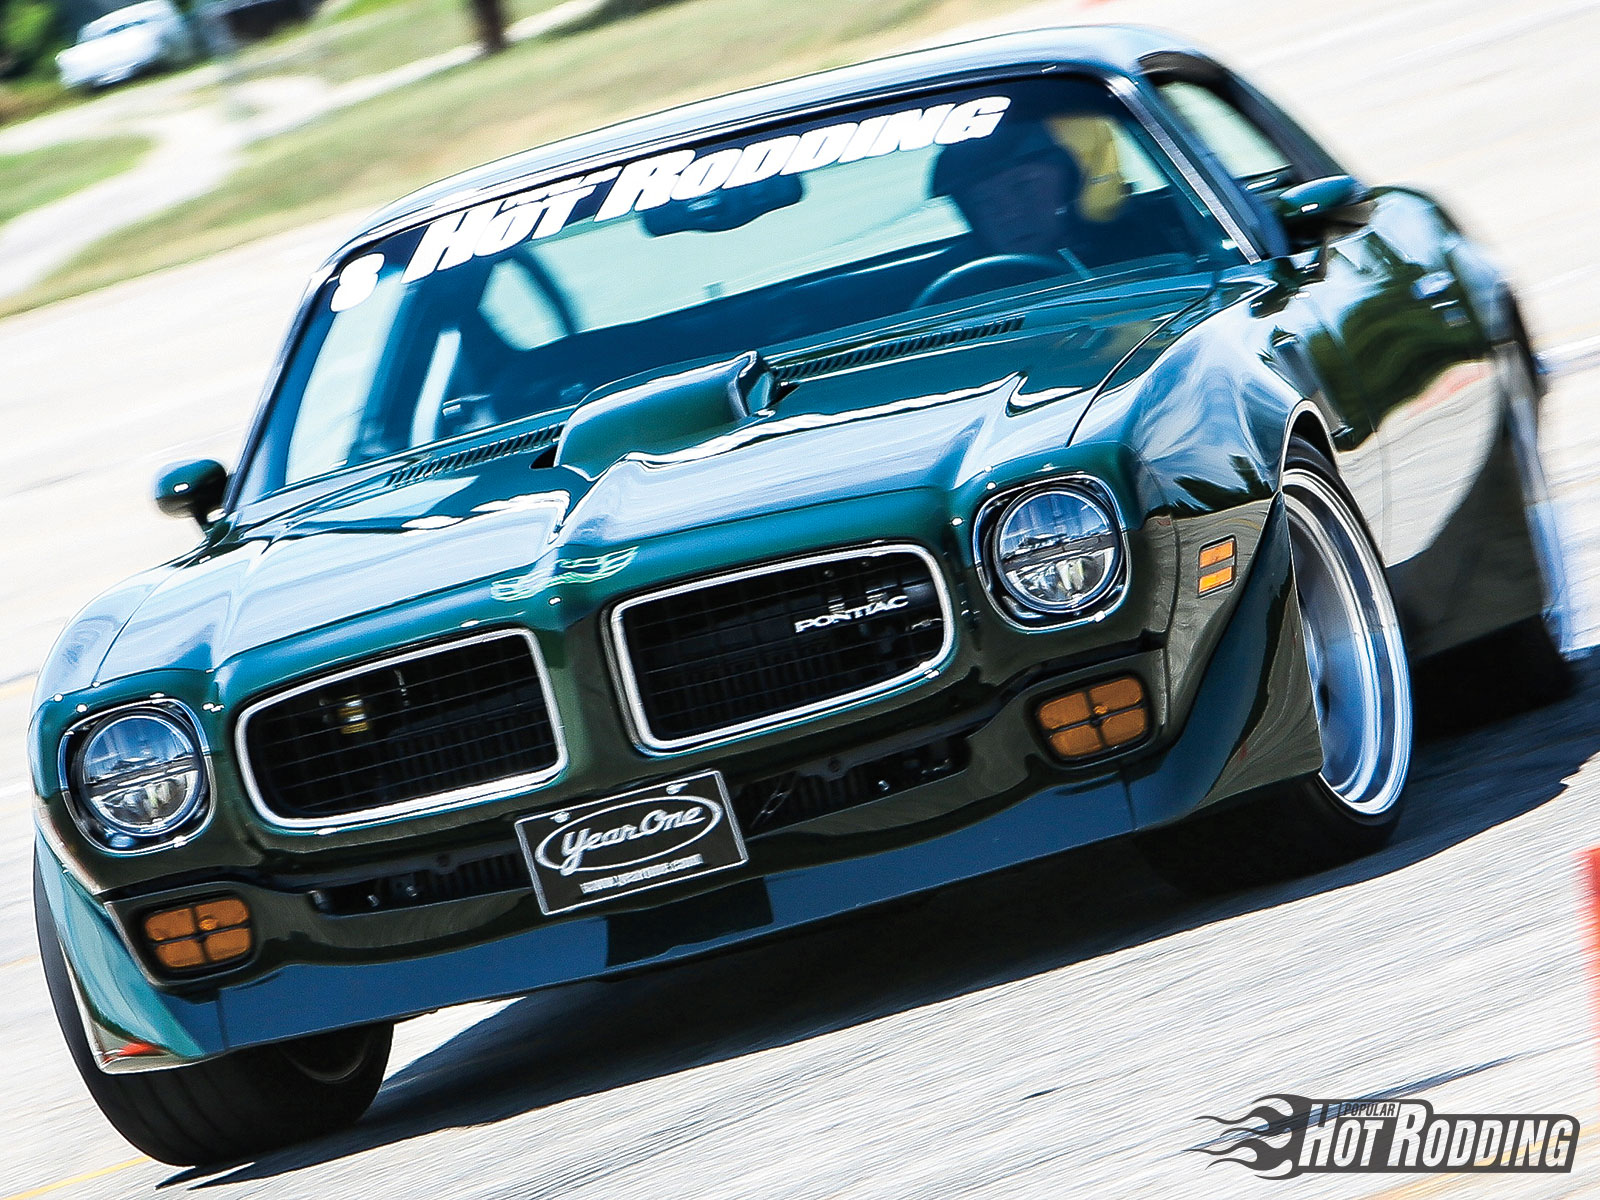 yearone trans am wallpaper - photo #25